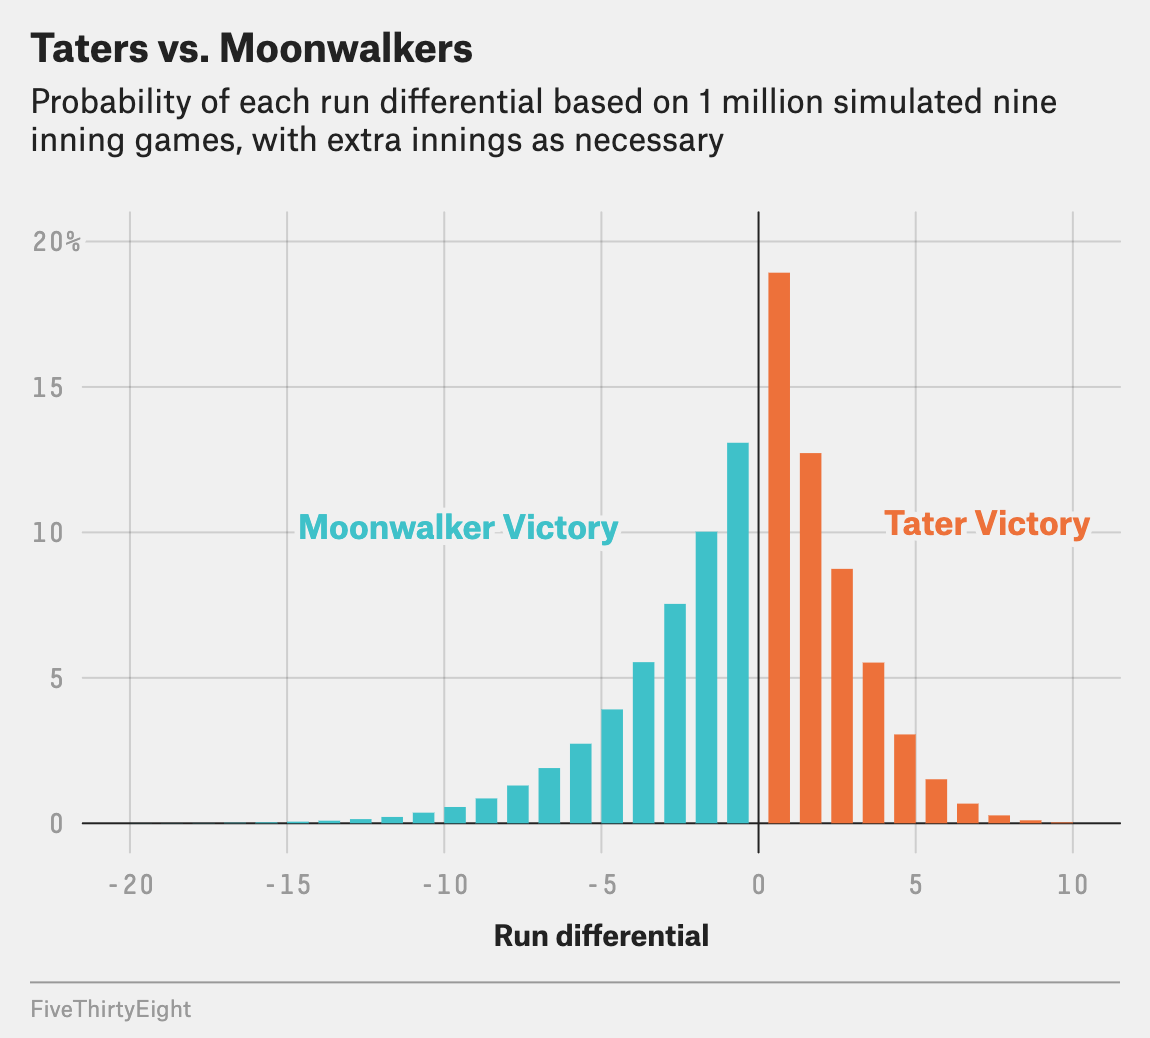 Histogram of run differential in 1 million matchups between the Taters and the Moonwalkers. The moonwalkers have a better chance of running of the score, but the Taters have a greater chance of winning the matchup.